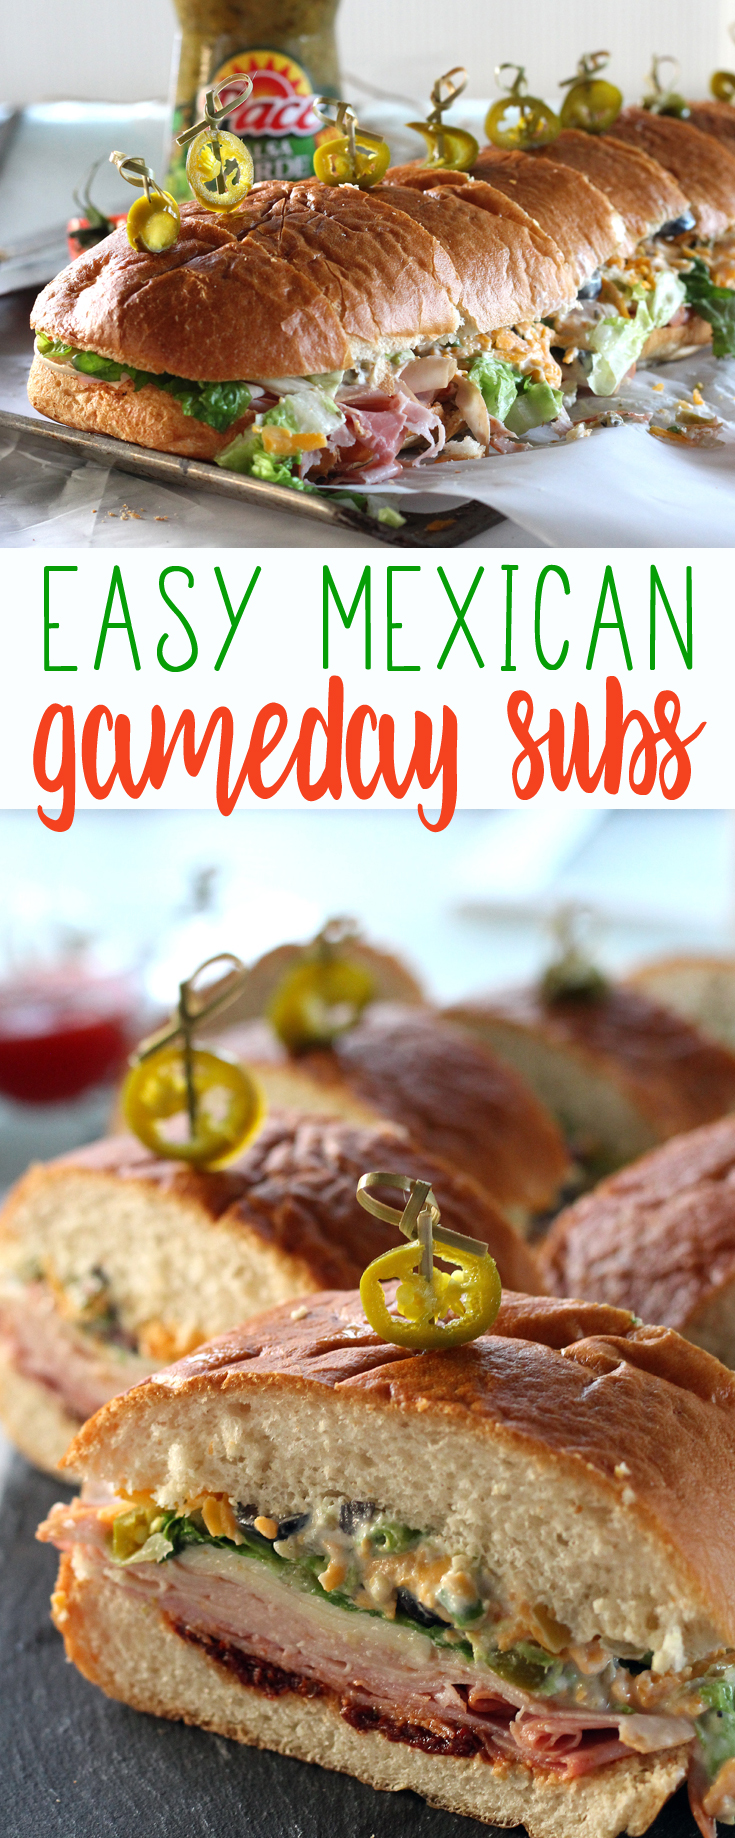 Turn the flavor all the way up with Mexican-inspired Gameday Sub Sandwiches. Layers of meats, cheeses and veggies with bold pops of peppers and salsa verde.